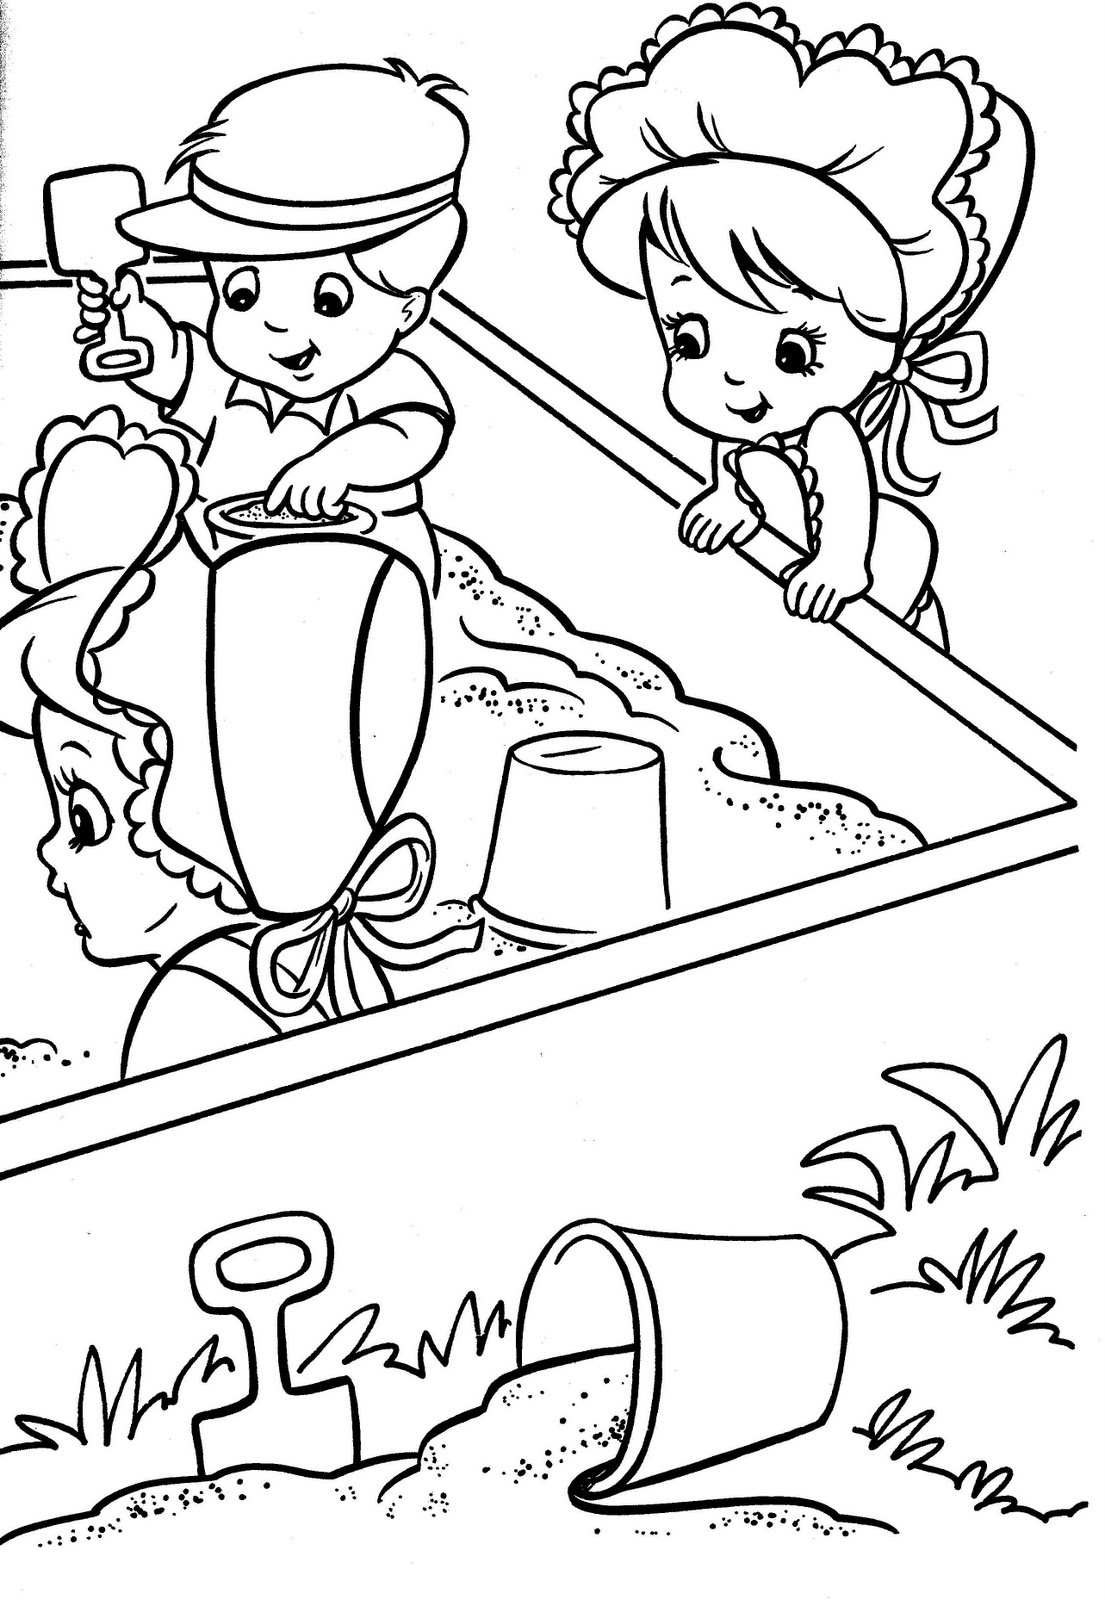 just for fun i had my daughter scan the book click on the images below to see the tyco quints coloring pages